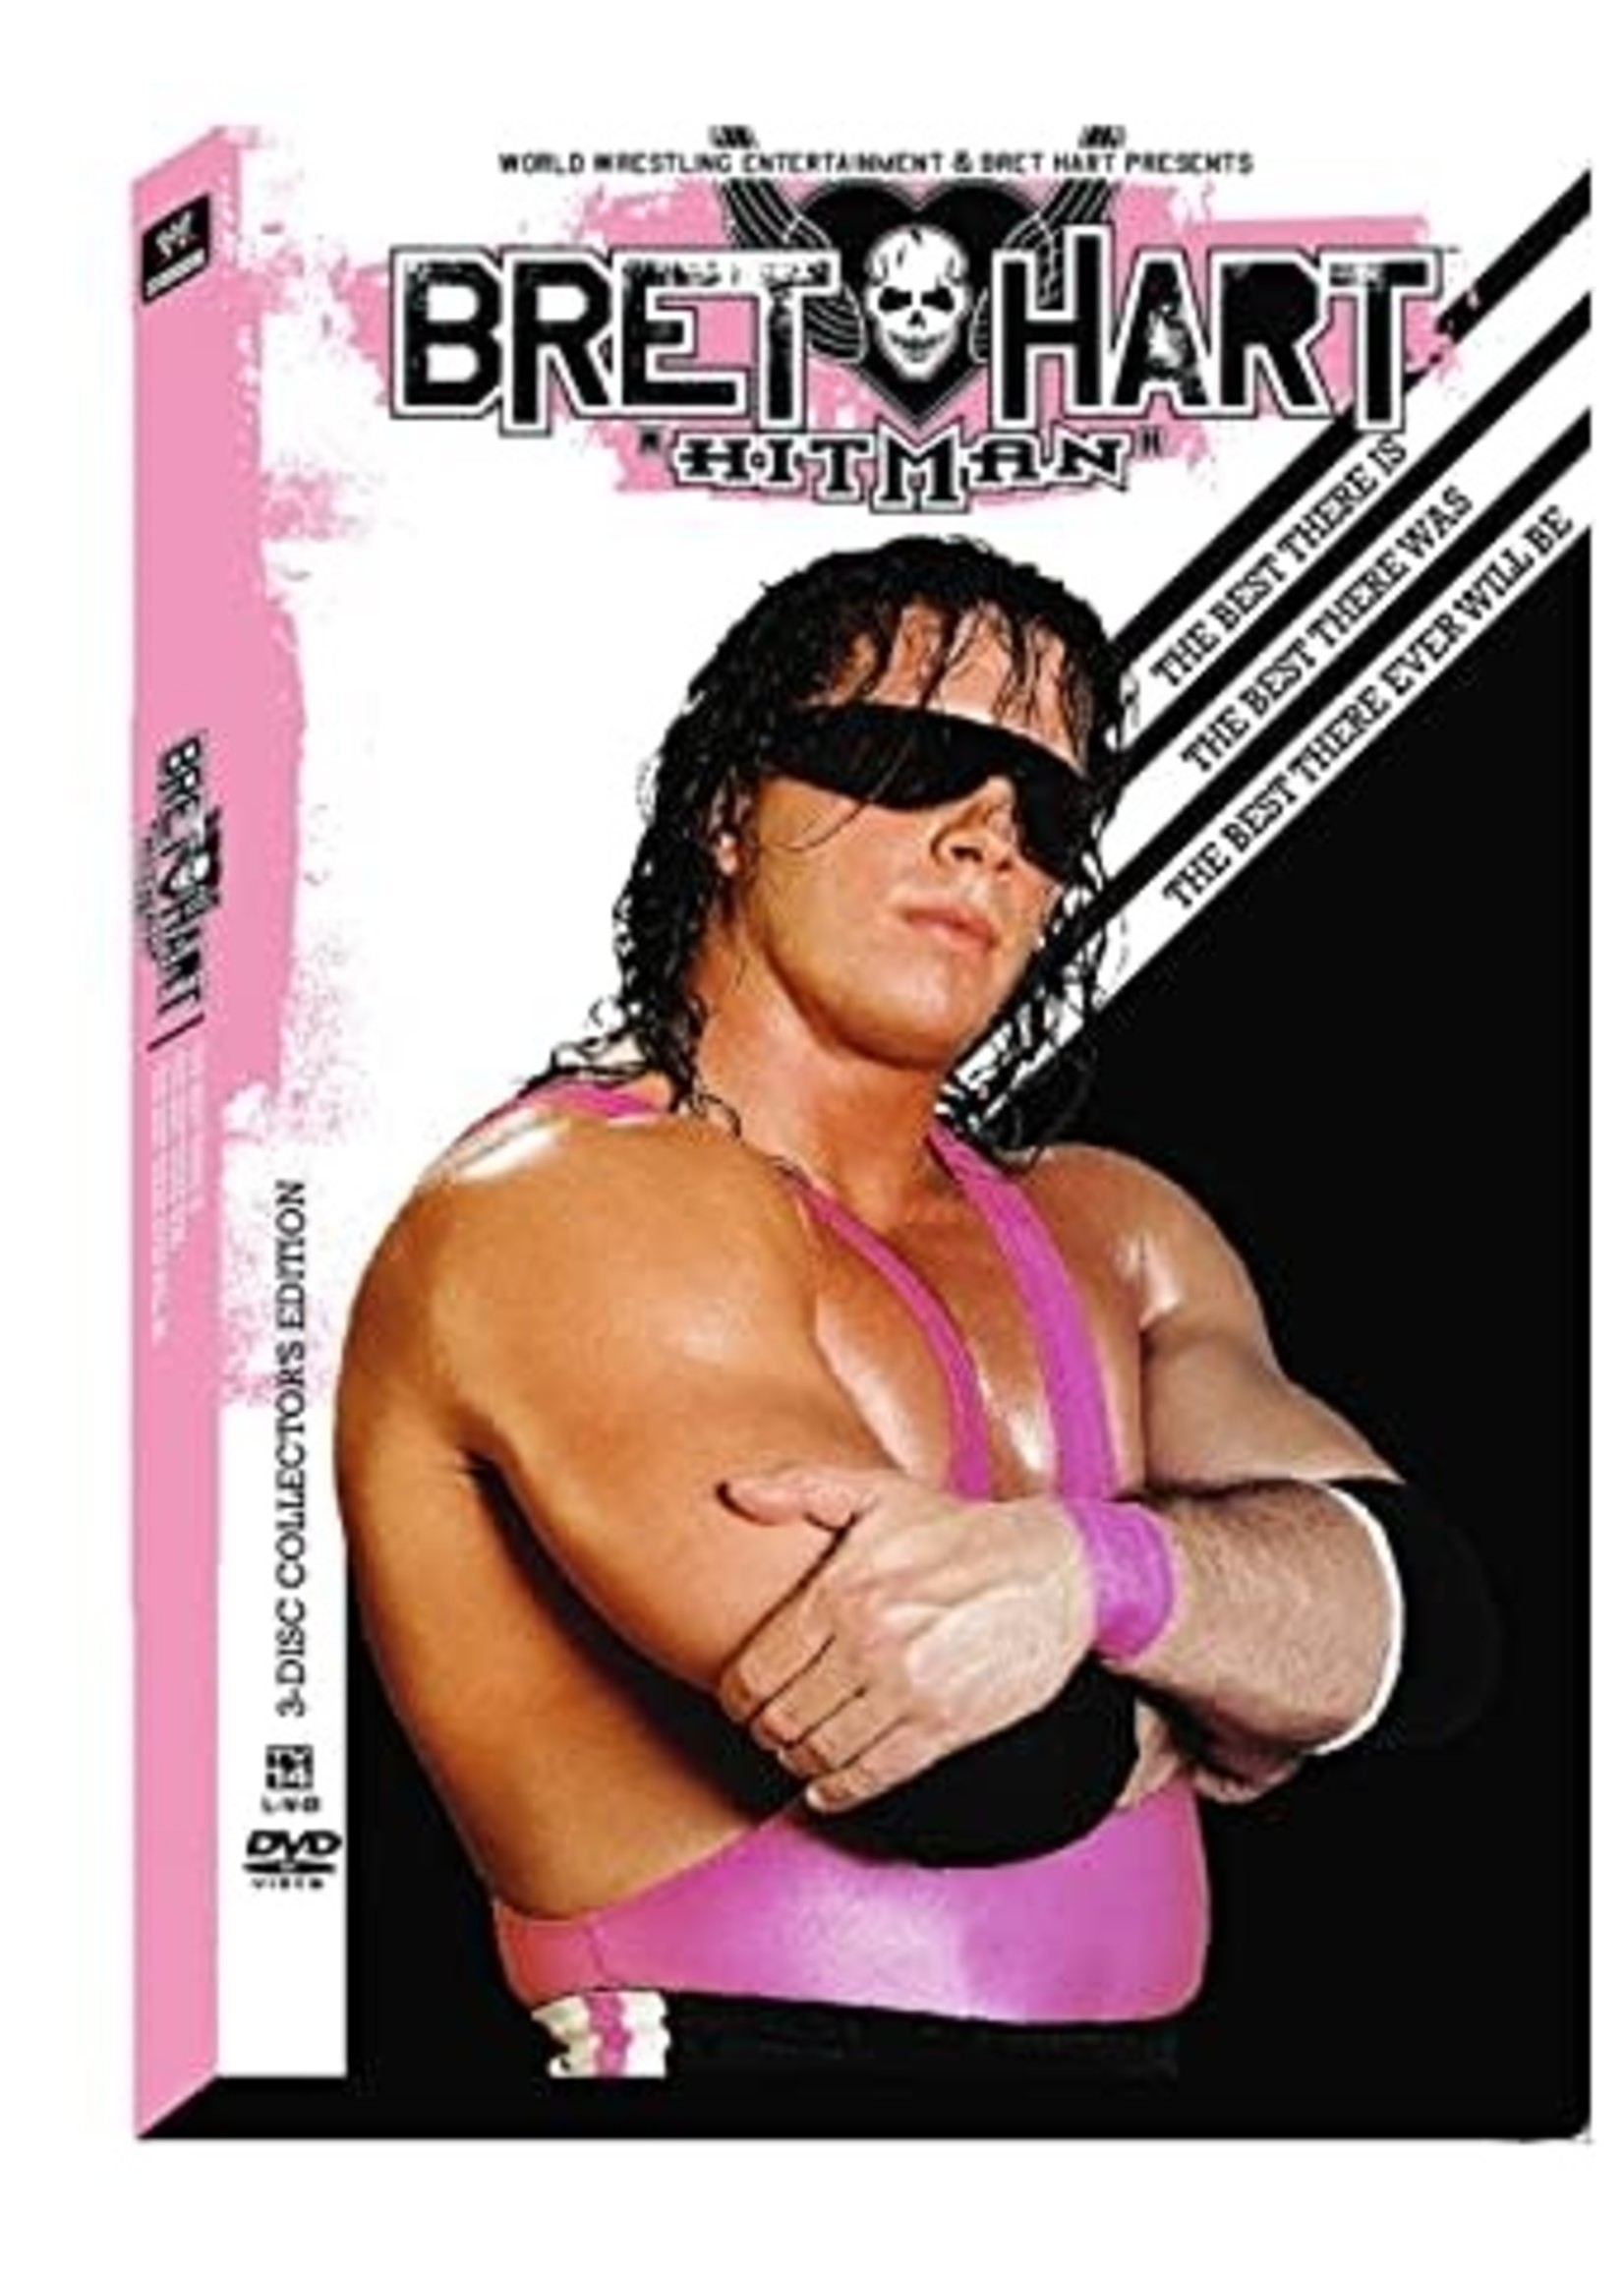 """WWE: Bret """"Hitman"""" Hart - The Best There Is, The Best There Was, The Best There Ever Will Be DVD"""